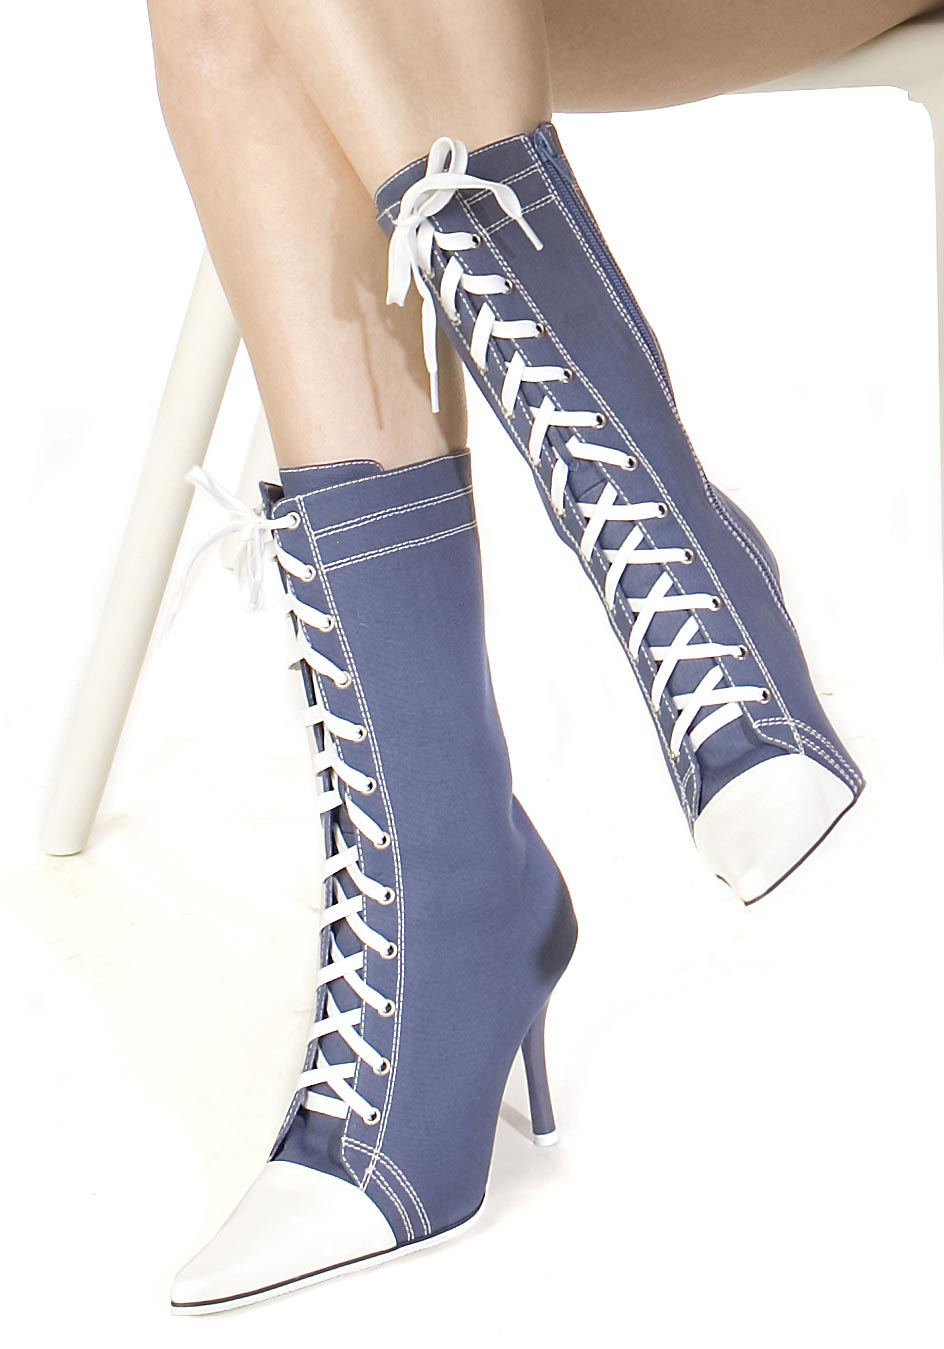 s 4 5 inch stiletto heel sneaker ankle boots with